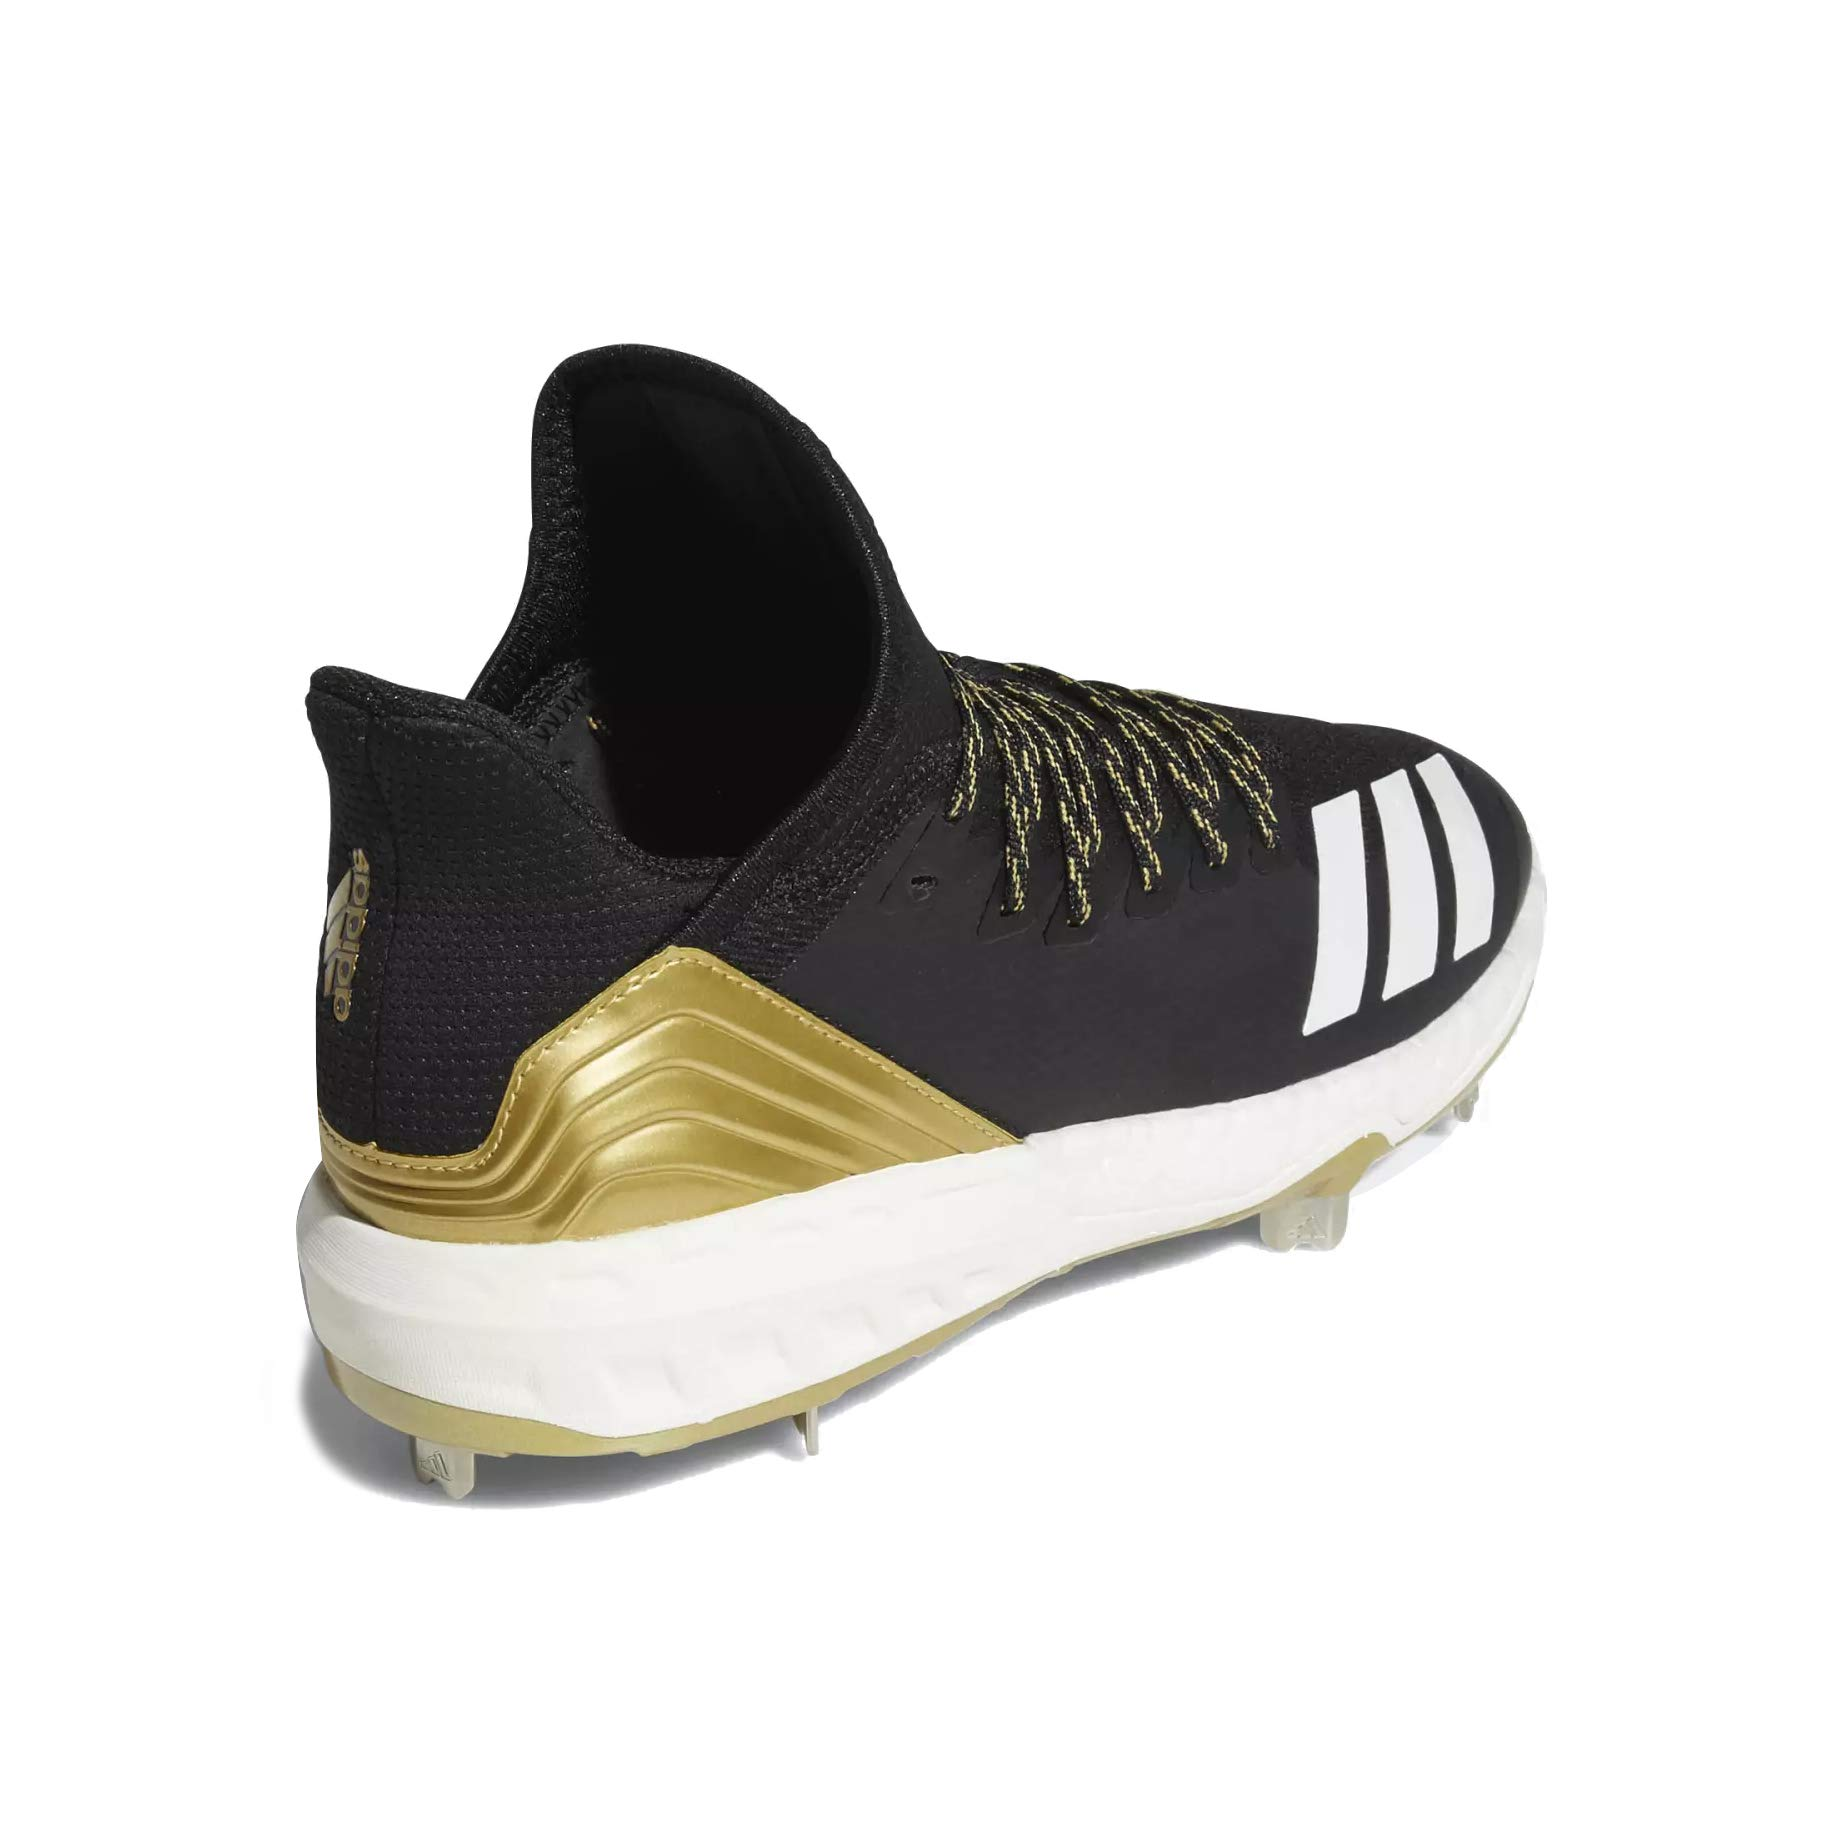 adidas Icon 4 Cleat - Men's Baseball 7 Black/White/Carbon by adidas (Image #3)